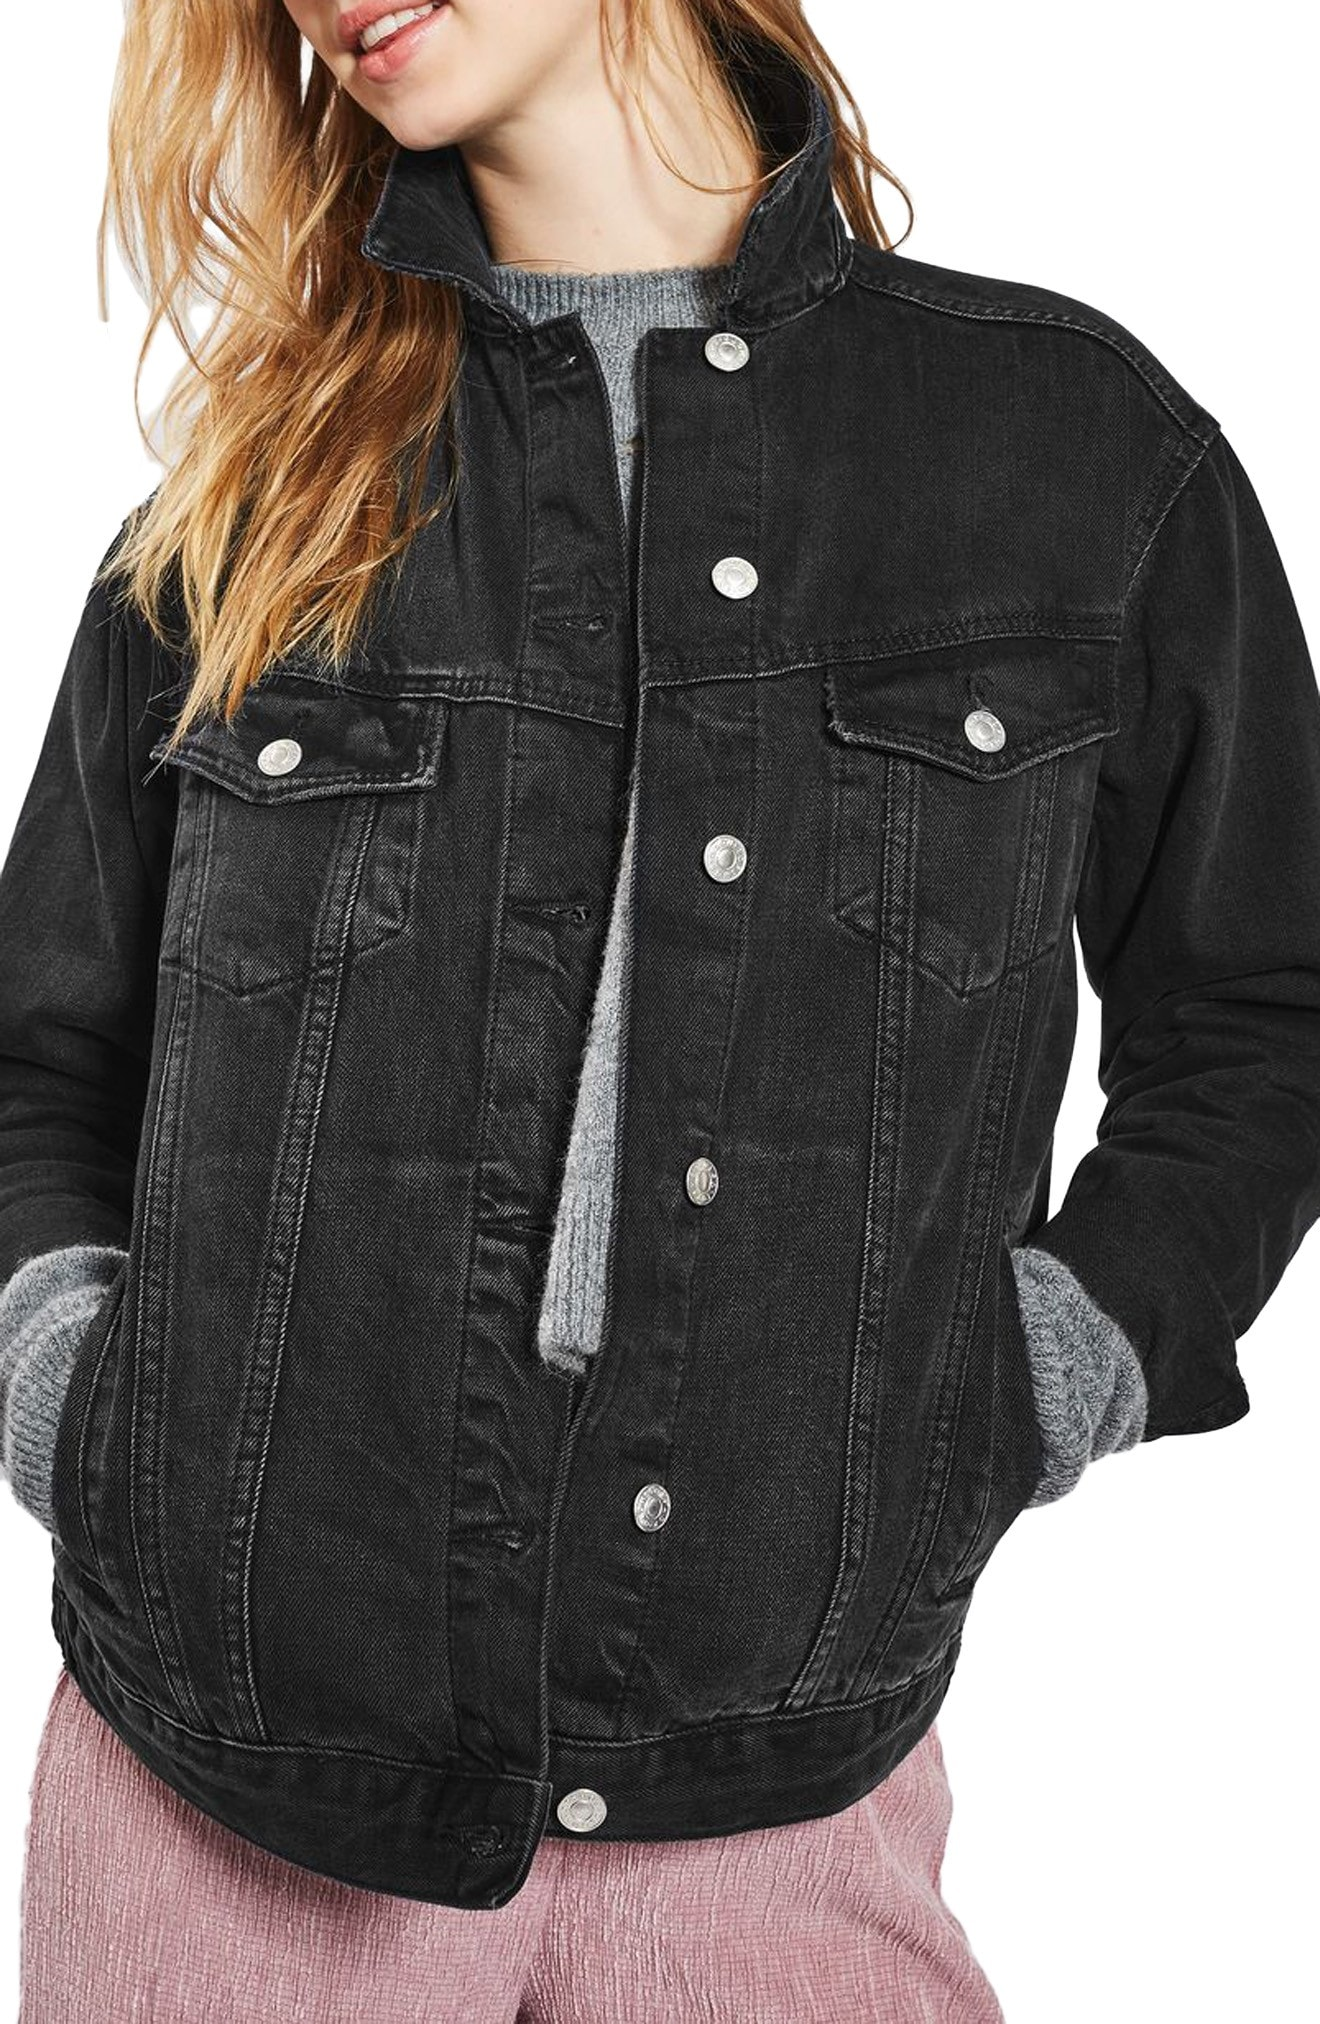 black denim jacket | Nordstrom